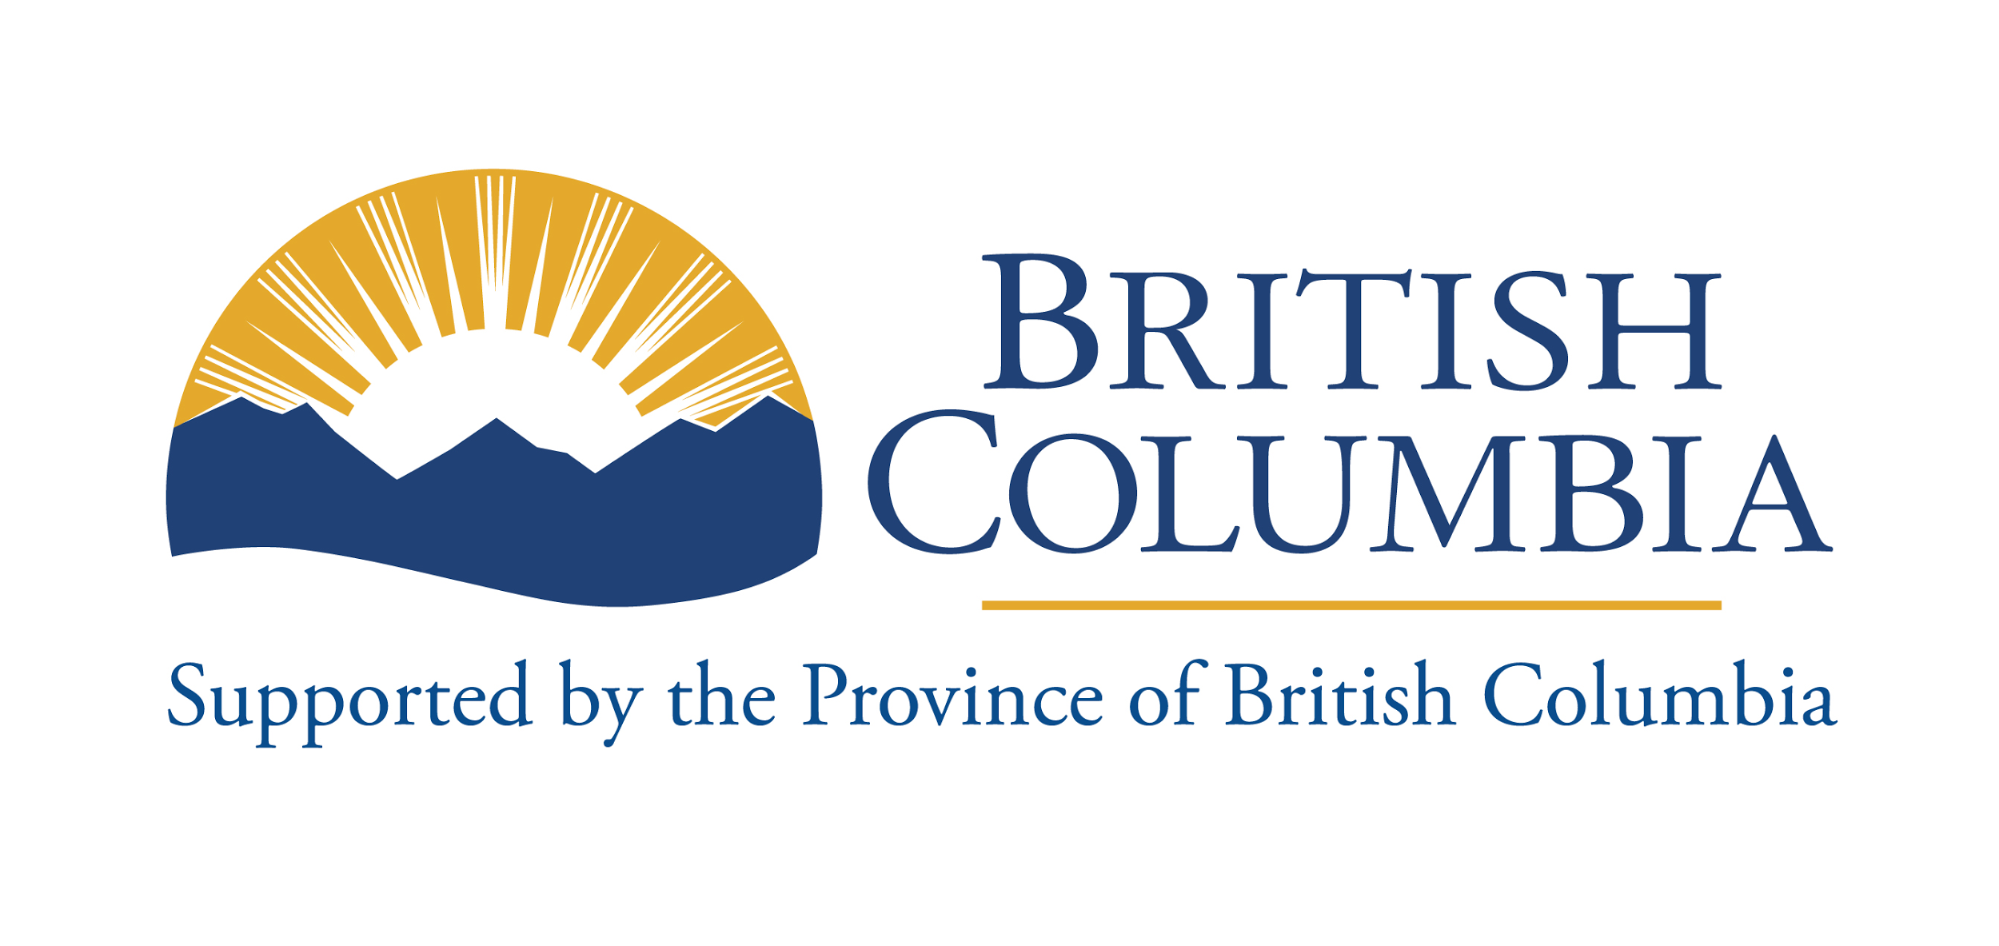 Supported by the Province of British Columbia logo